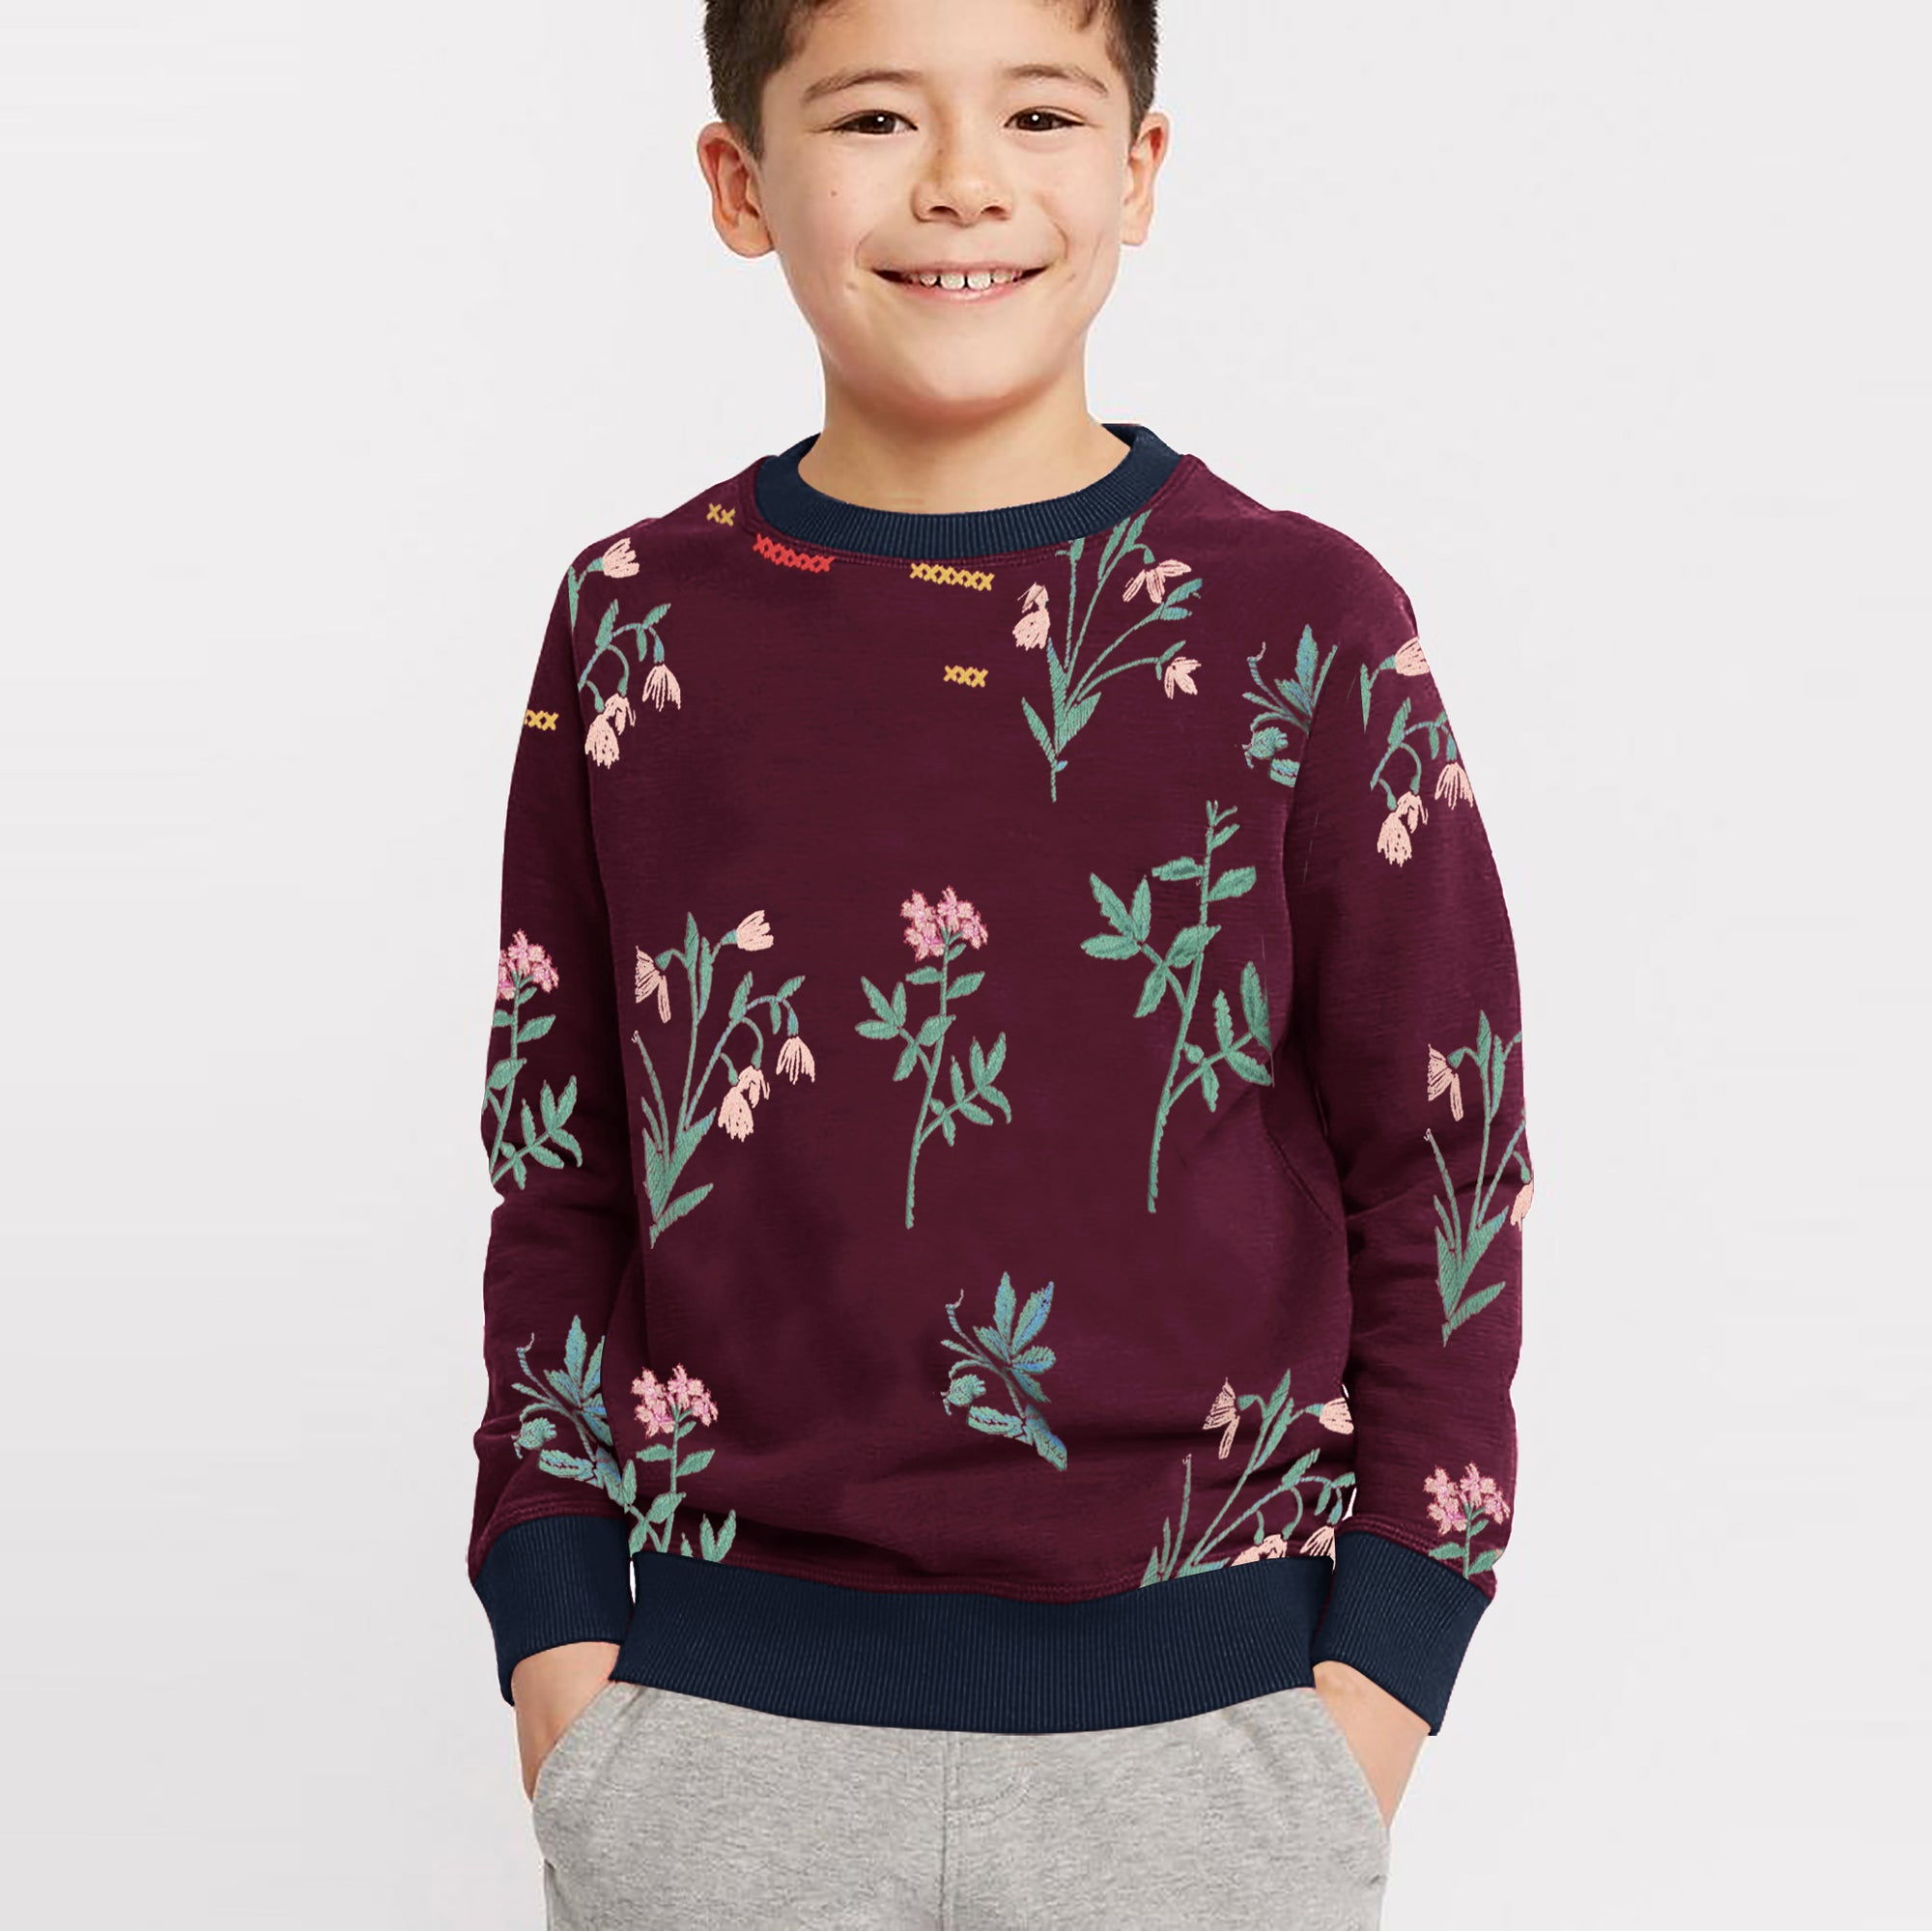 Tommy Hilfiger Fleece Crew Neck Sweatshirt For Kids-Maroon With Allover Print-SP1386